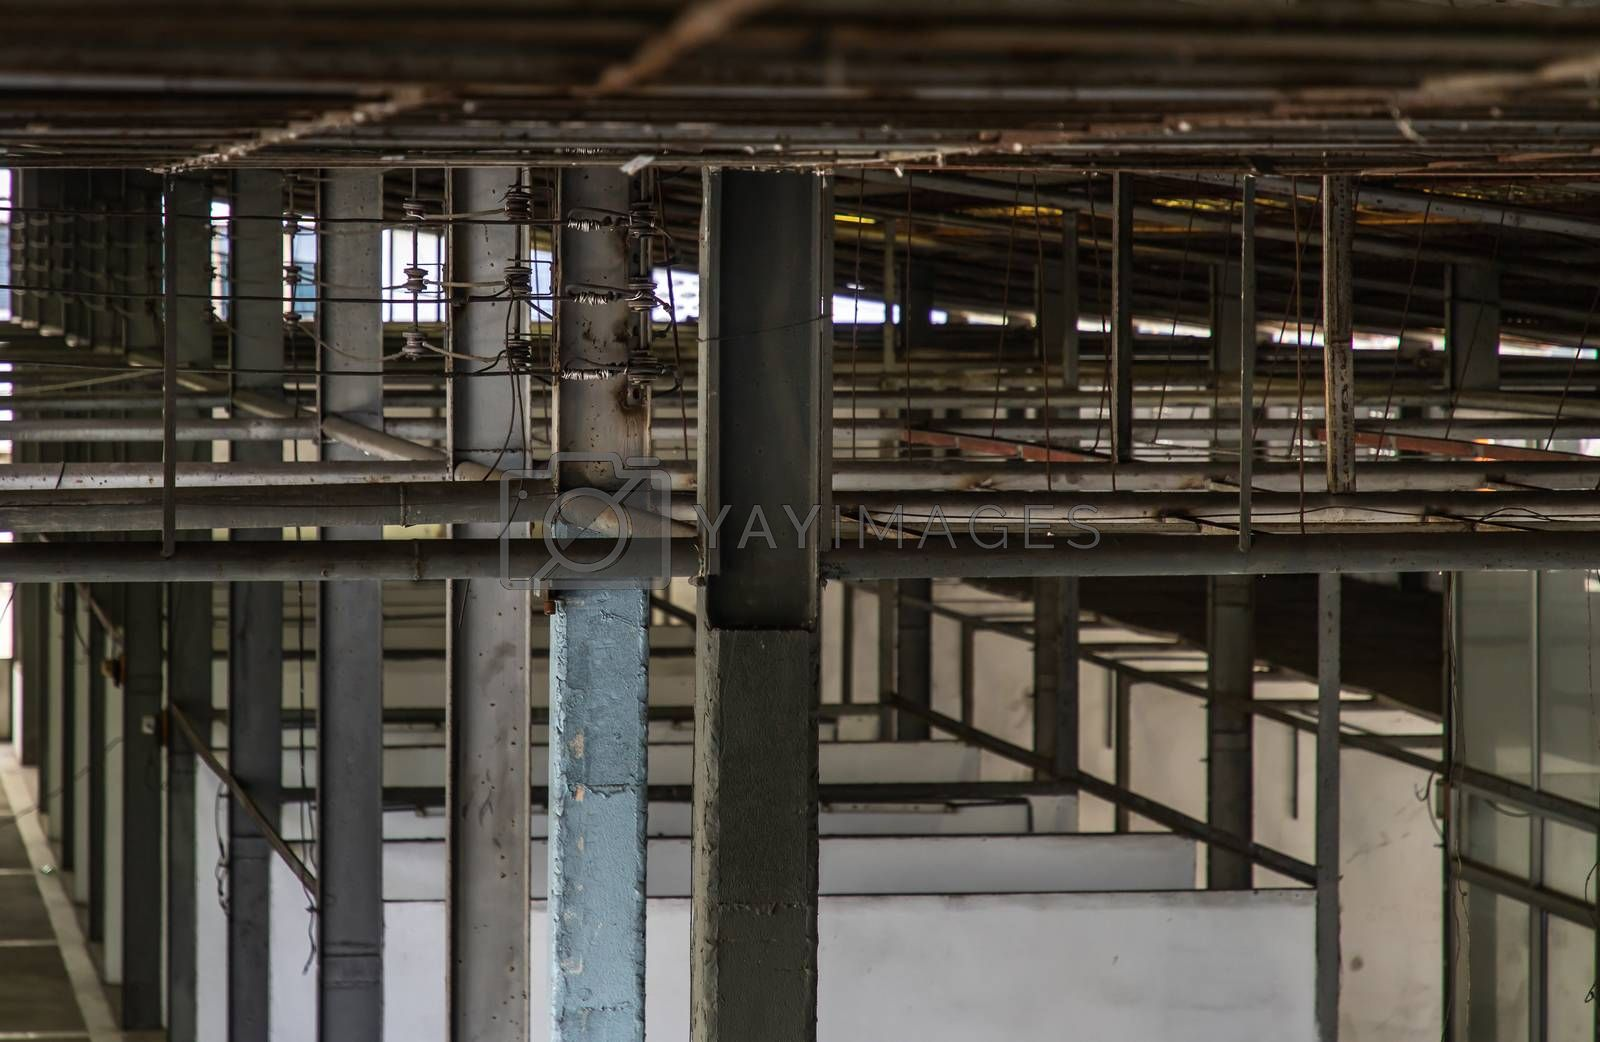 The structure inside the warehouse with light pole. Old structure in old building indoor. Selective focus.